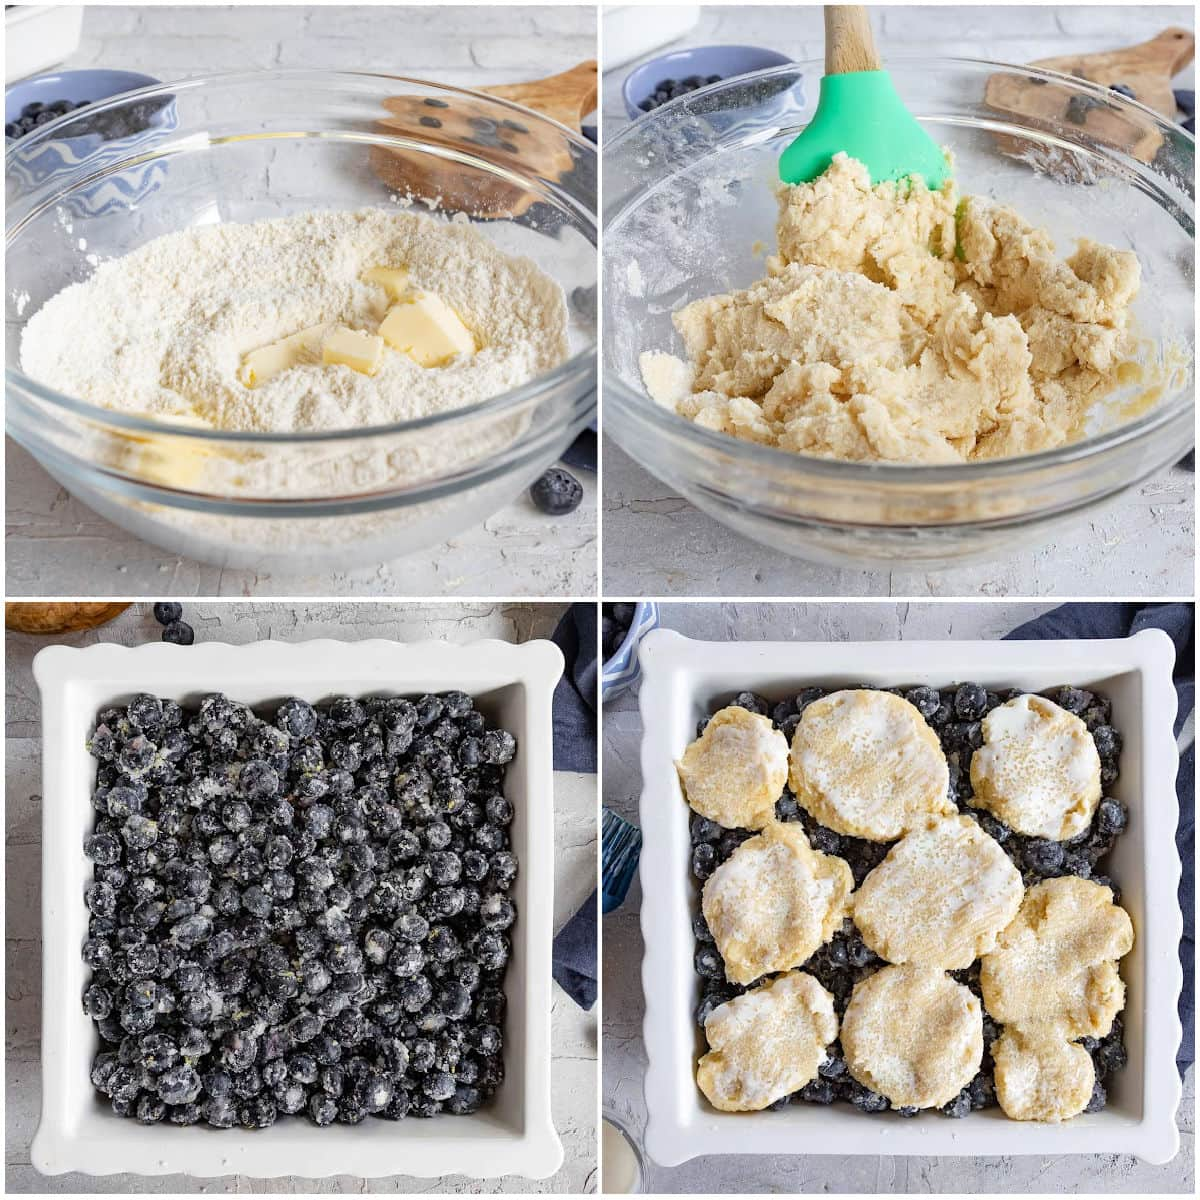 four image collage showing blueberry cobbler being assembled.